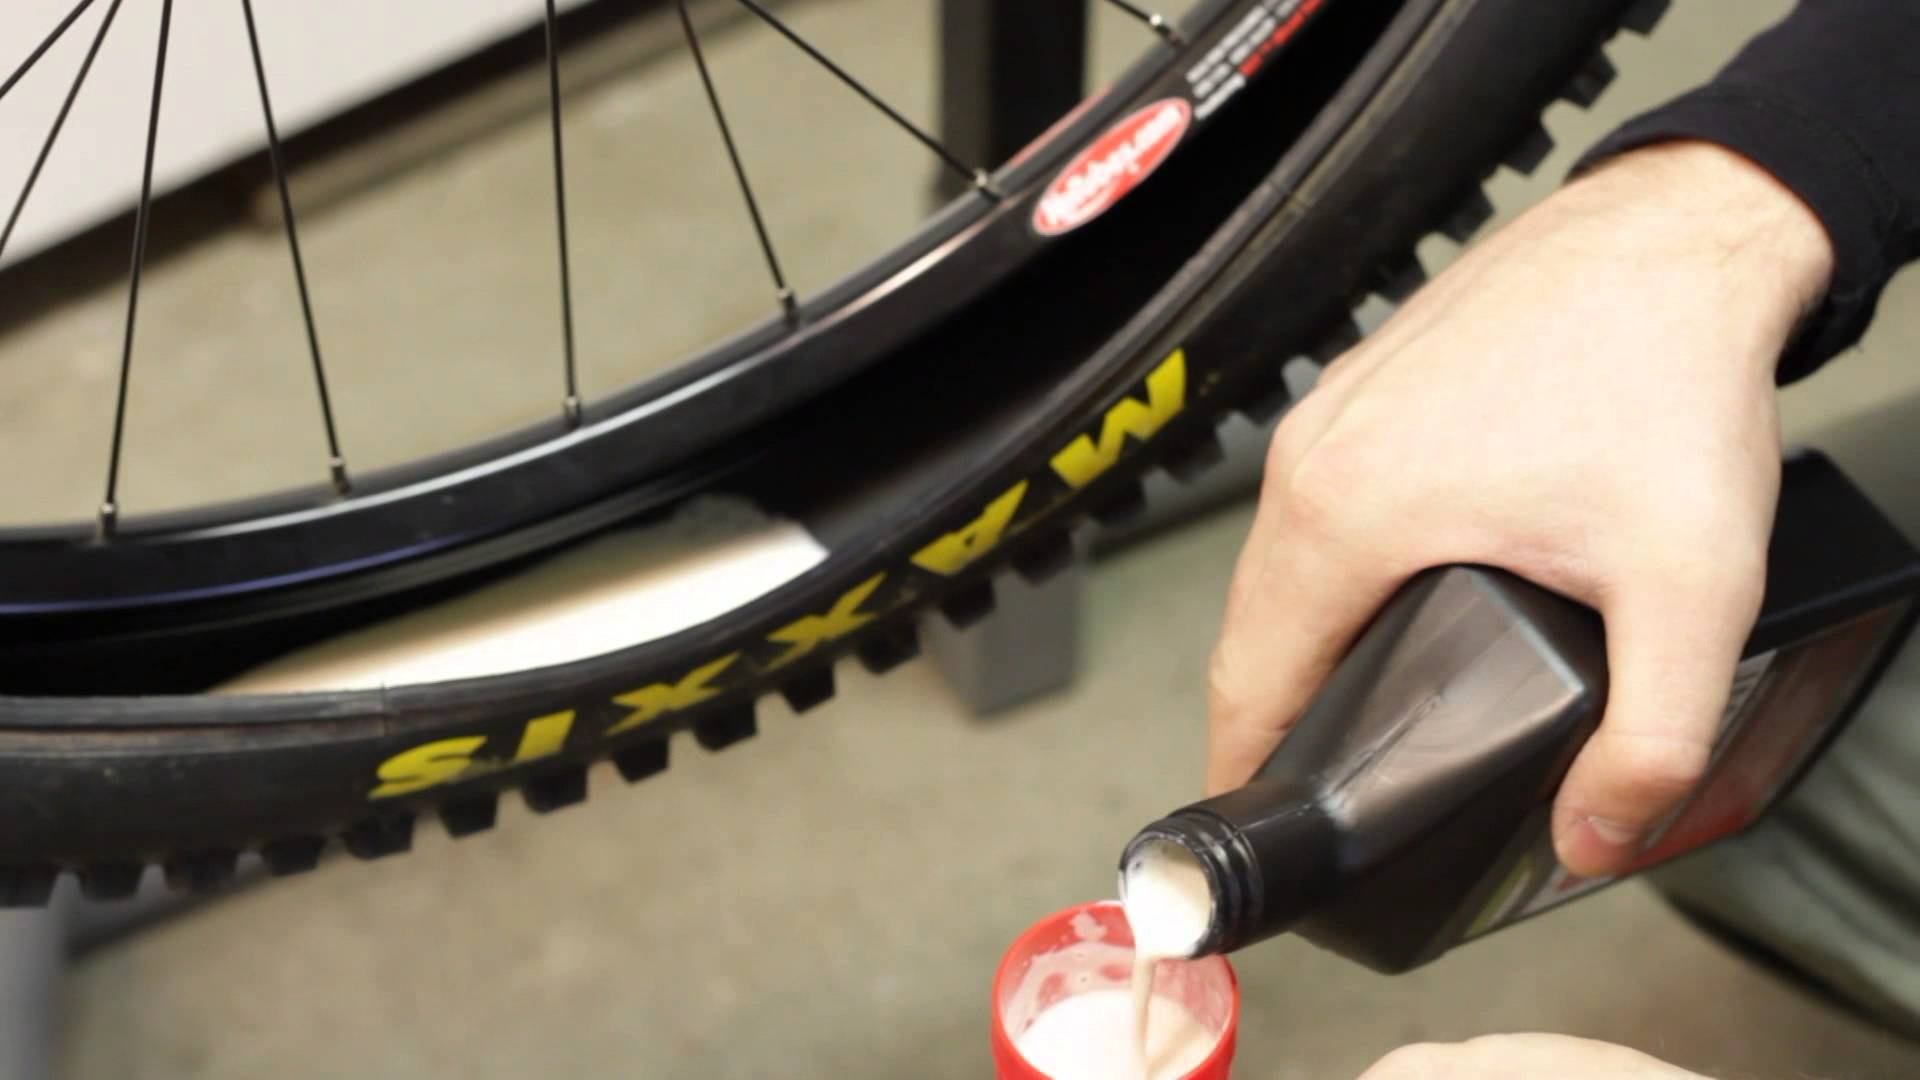 How to change a tubeless mtb tire